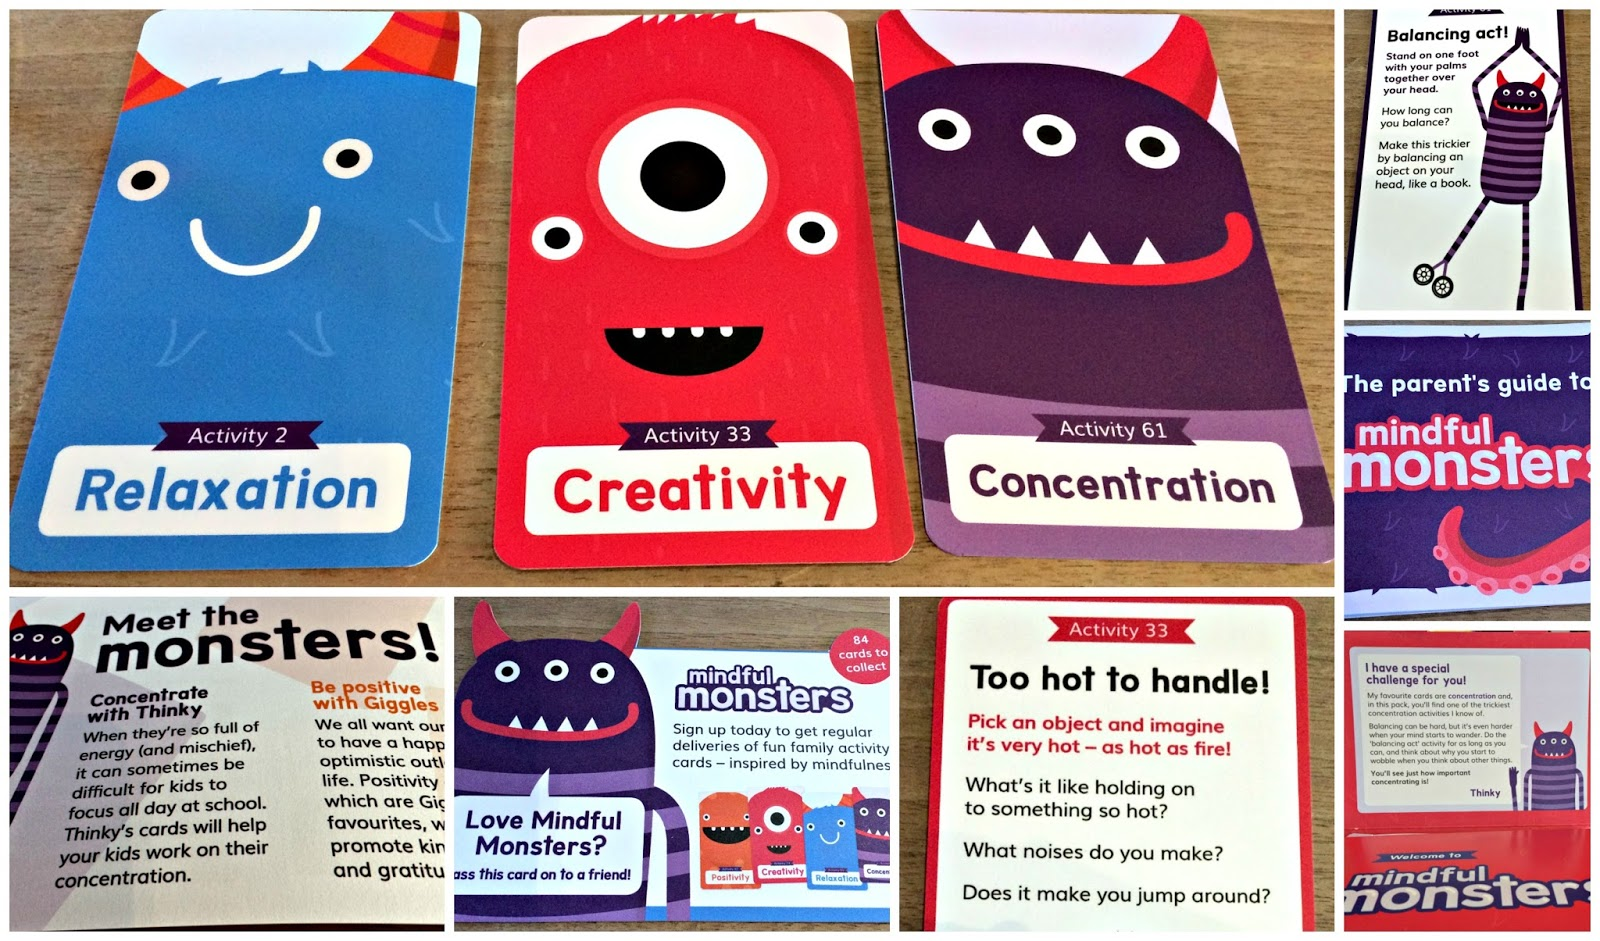 Mindful Monsters cards from the charity Scope